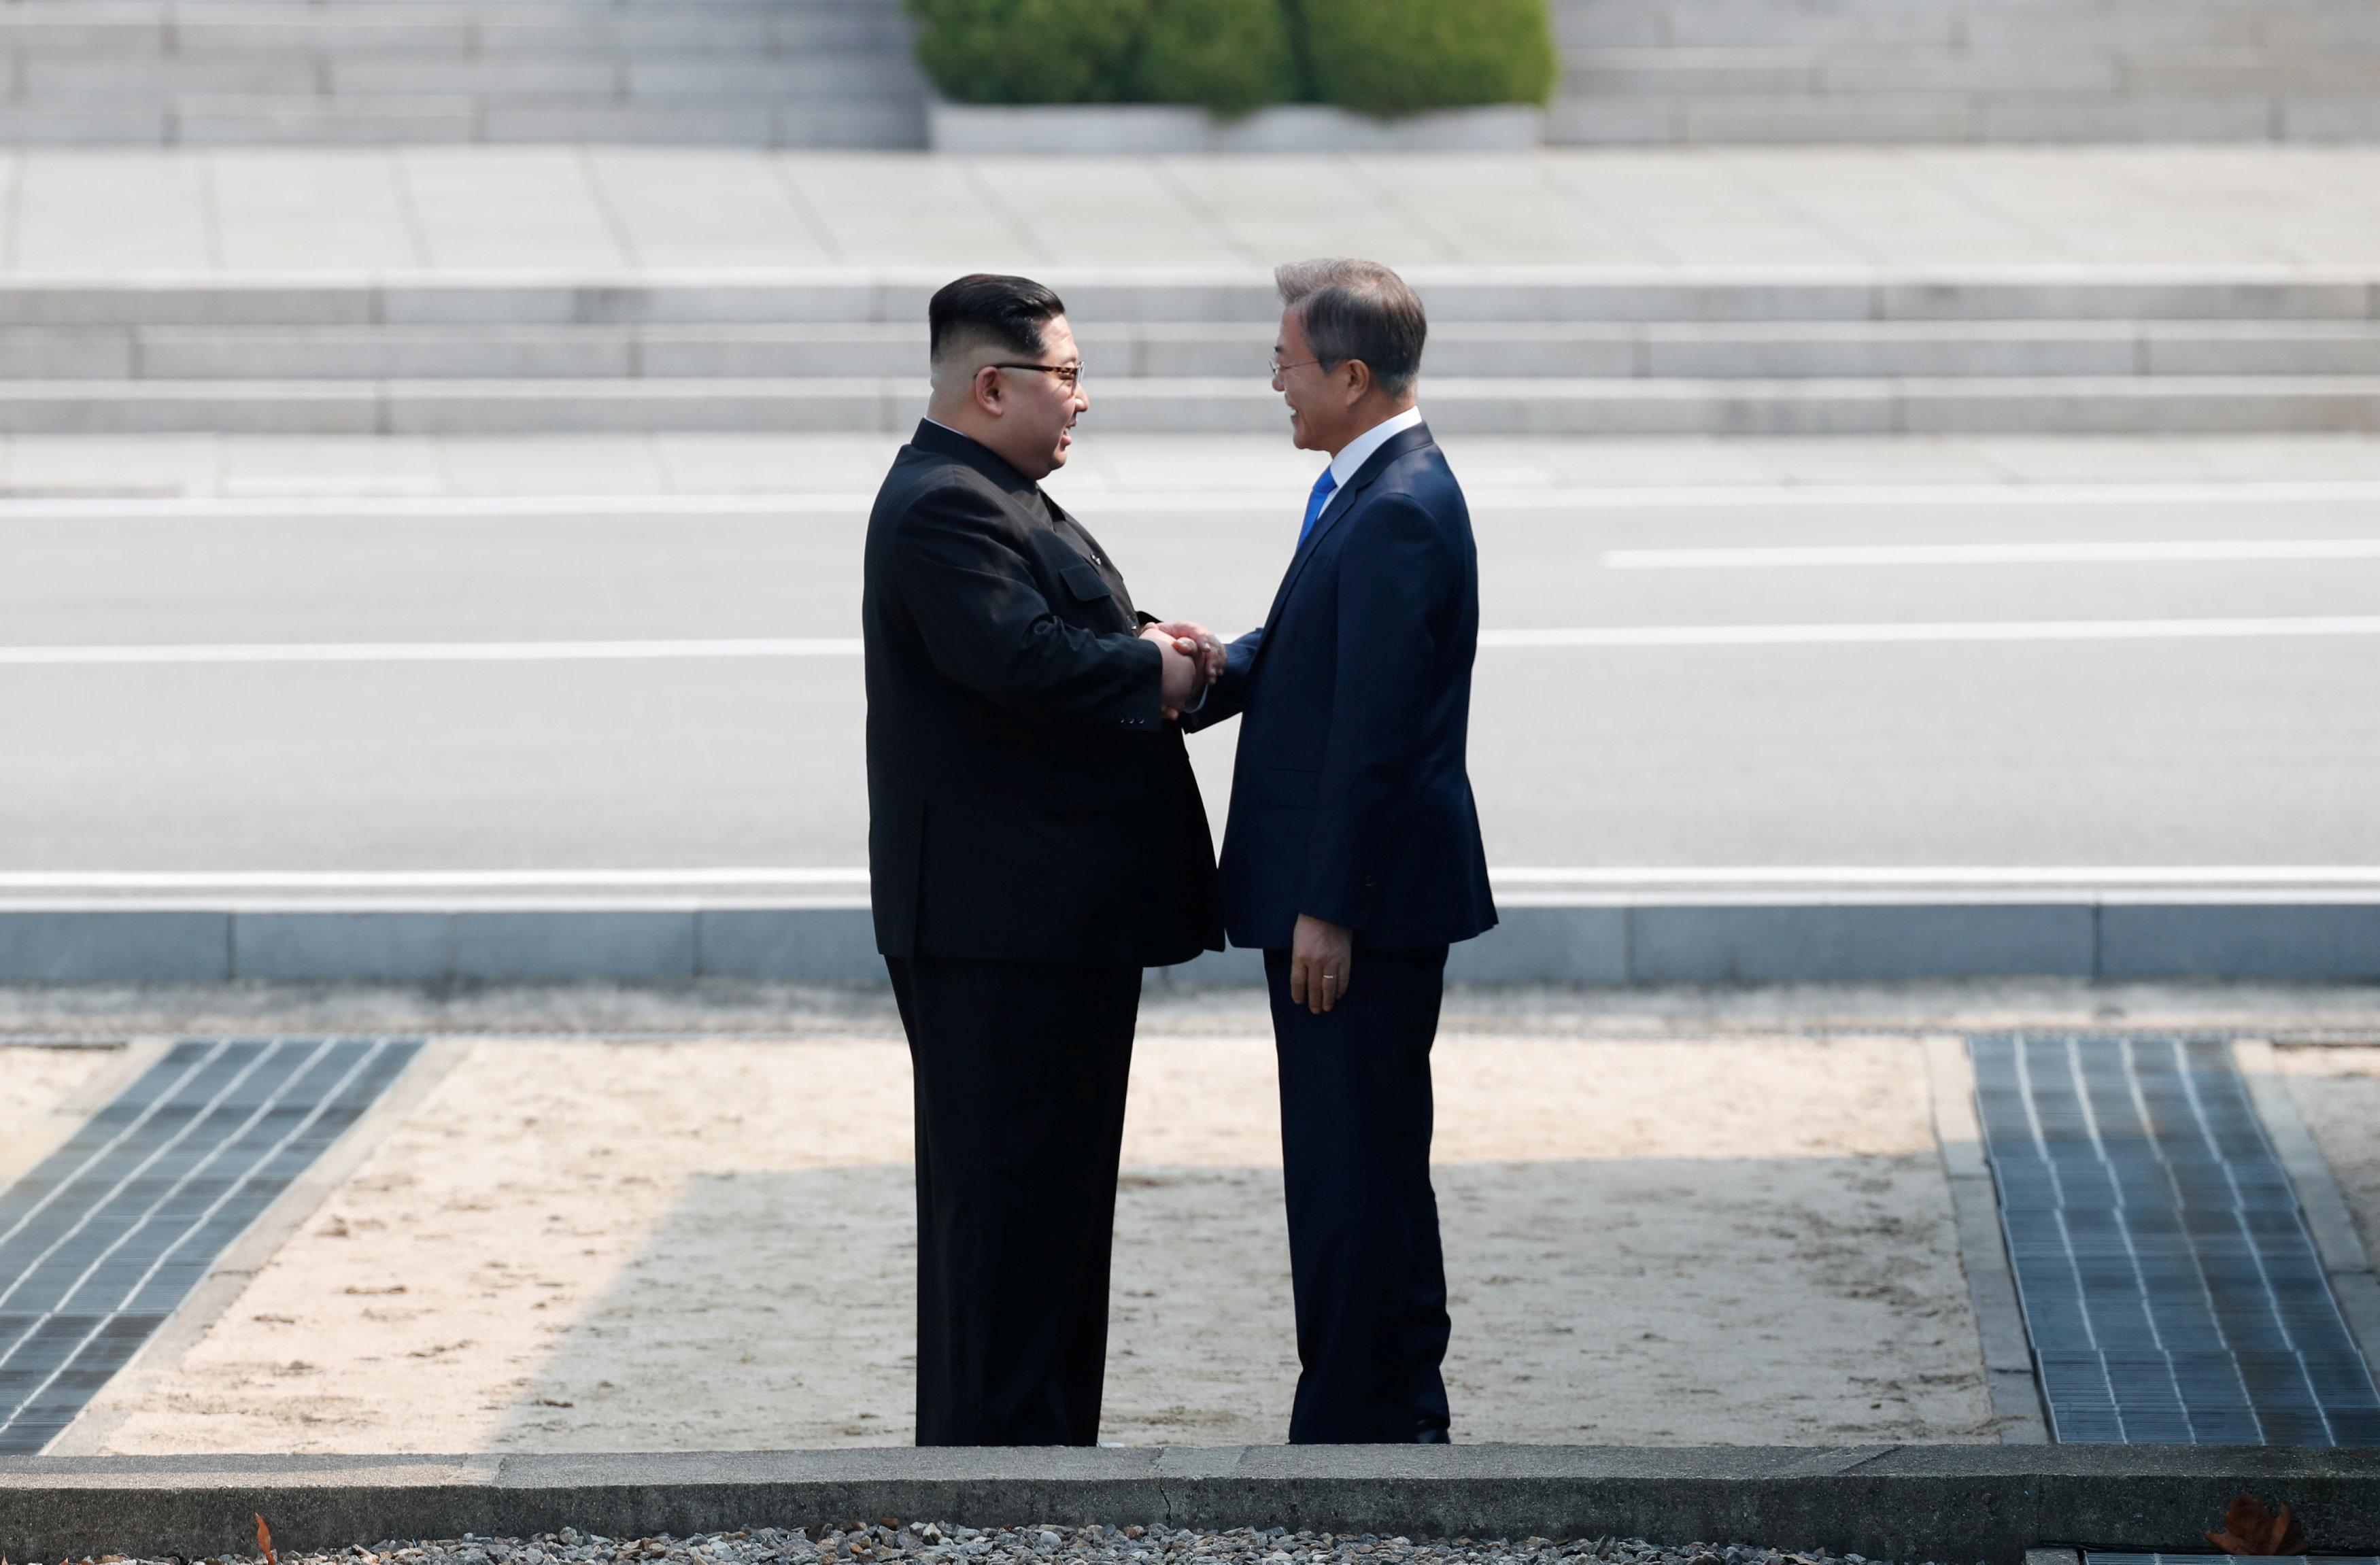 Smiles and long handshakes mark start of summit between leaders of rival Koreas